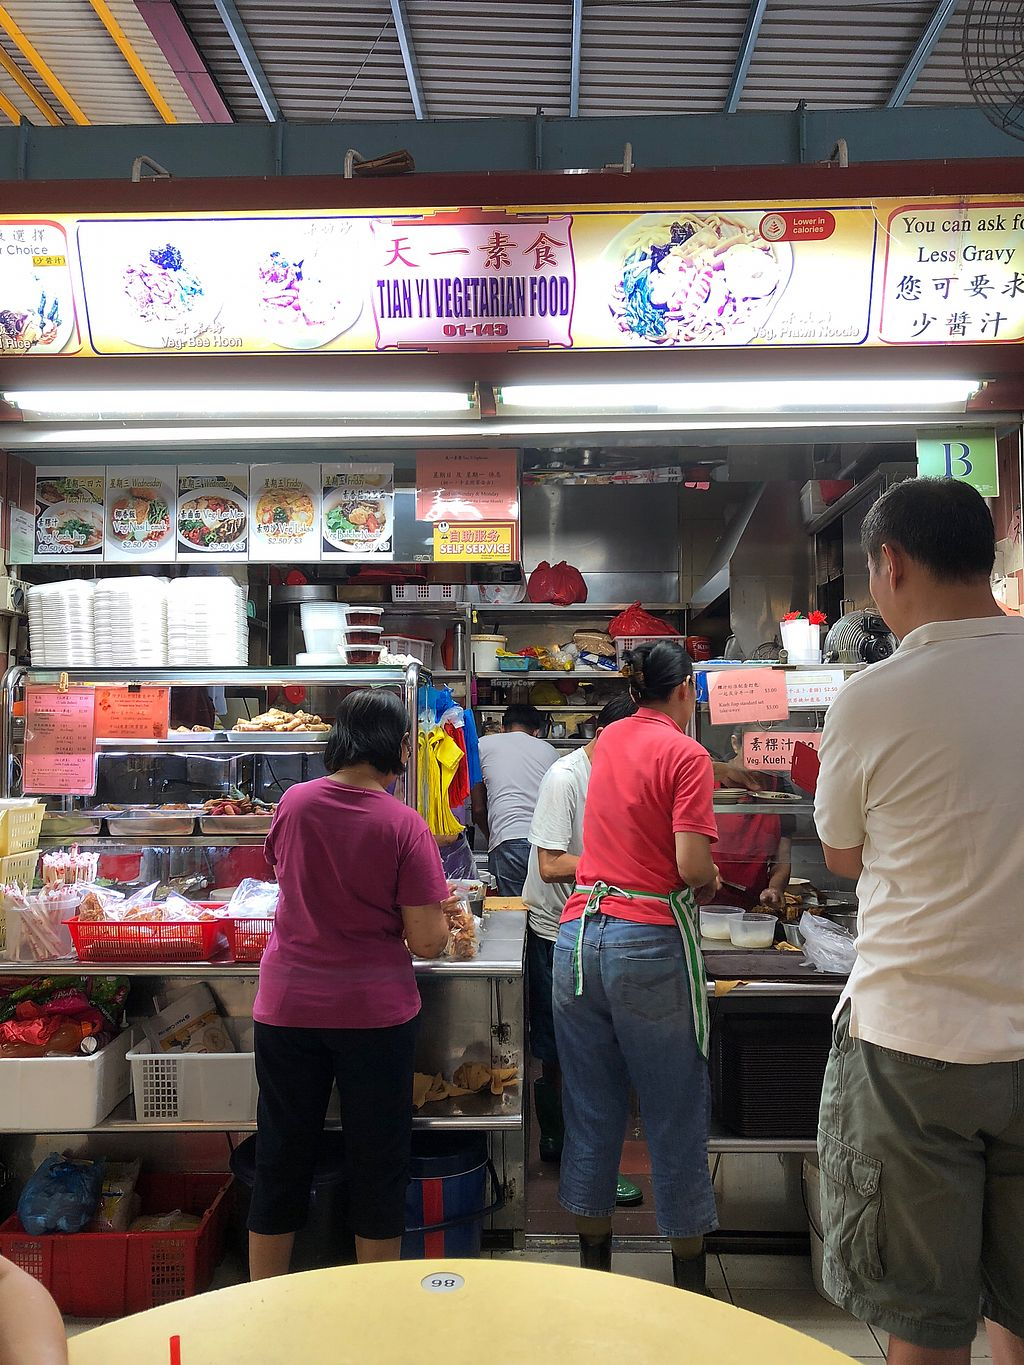 """Photo of Tian Yi Vegetarian  by <a href=""""/members/profile/Cheryldarestotravel"""">Cheryldarestotravel</a> <br/>Long queue, good business <br/> February 3, 2018  - <a href='/contact/abuse/image/58014/354205'>Report</a>"""